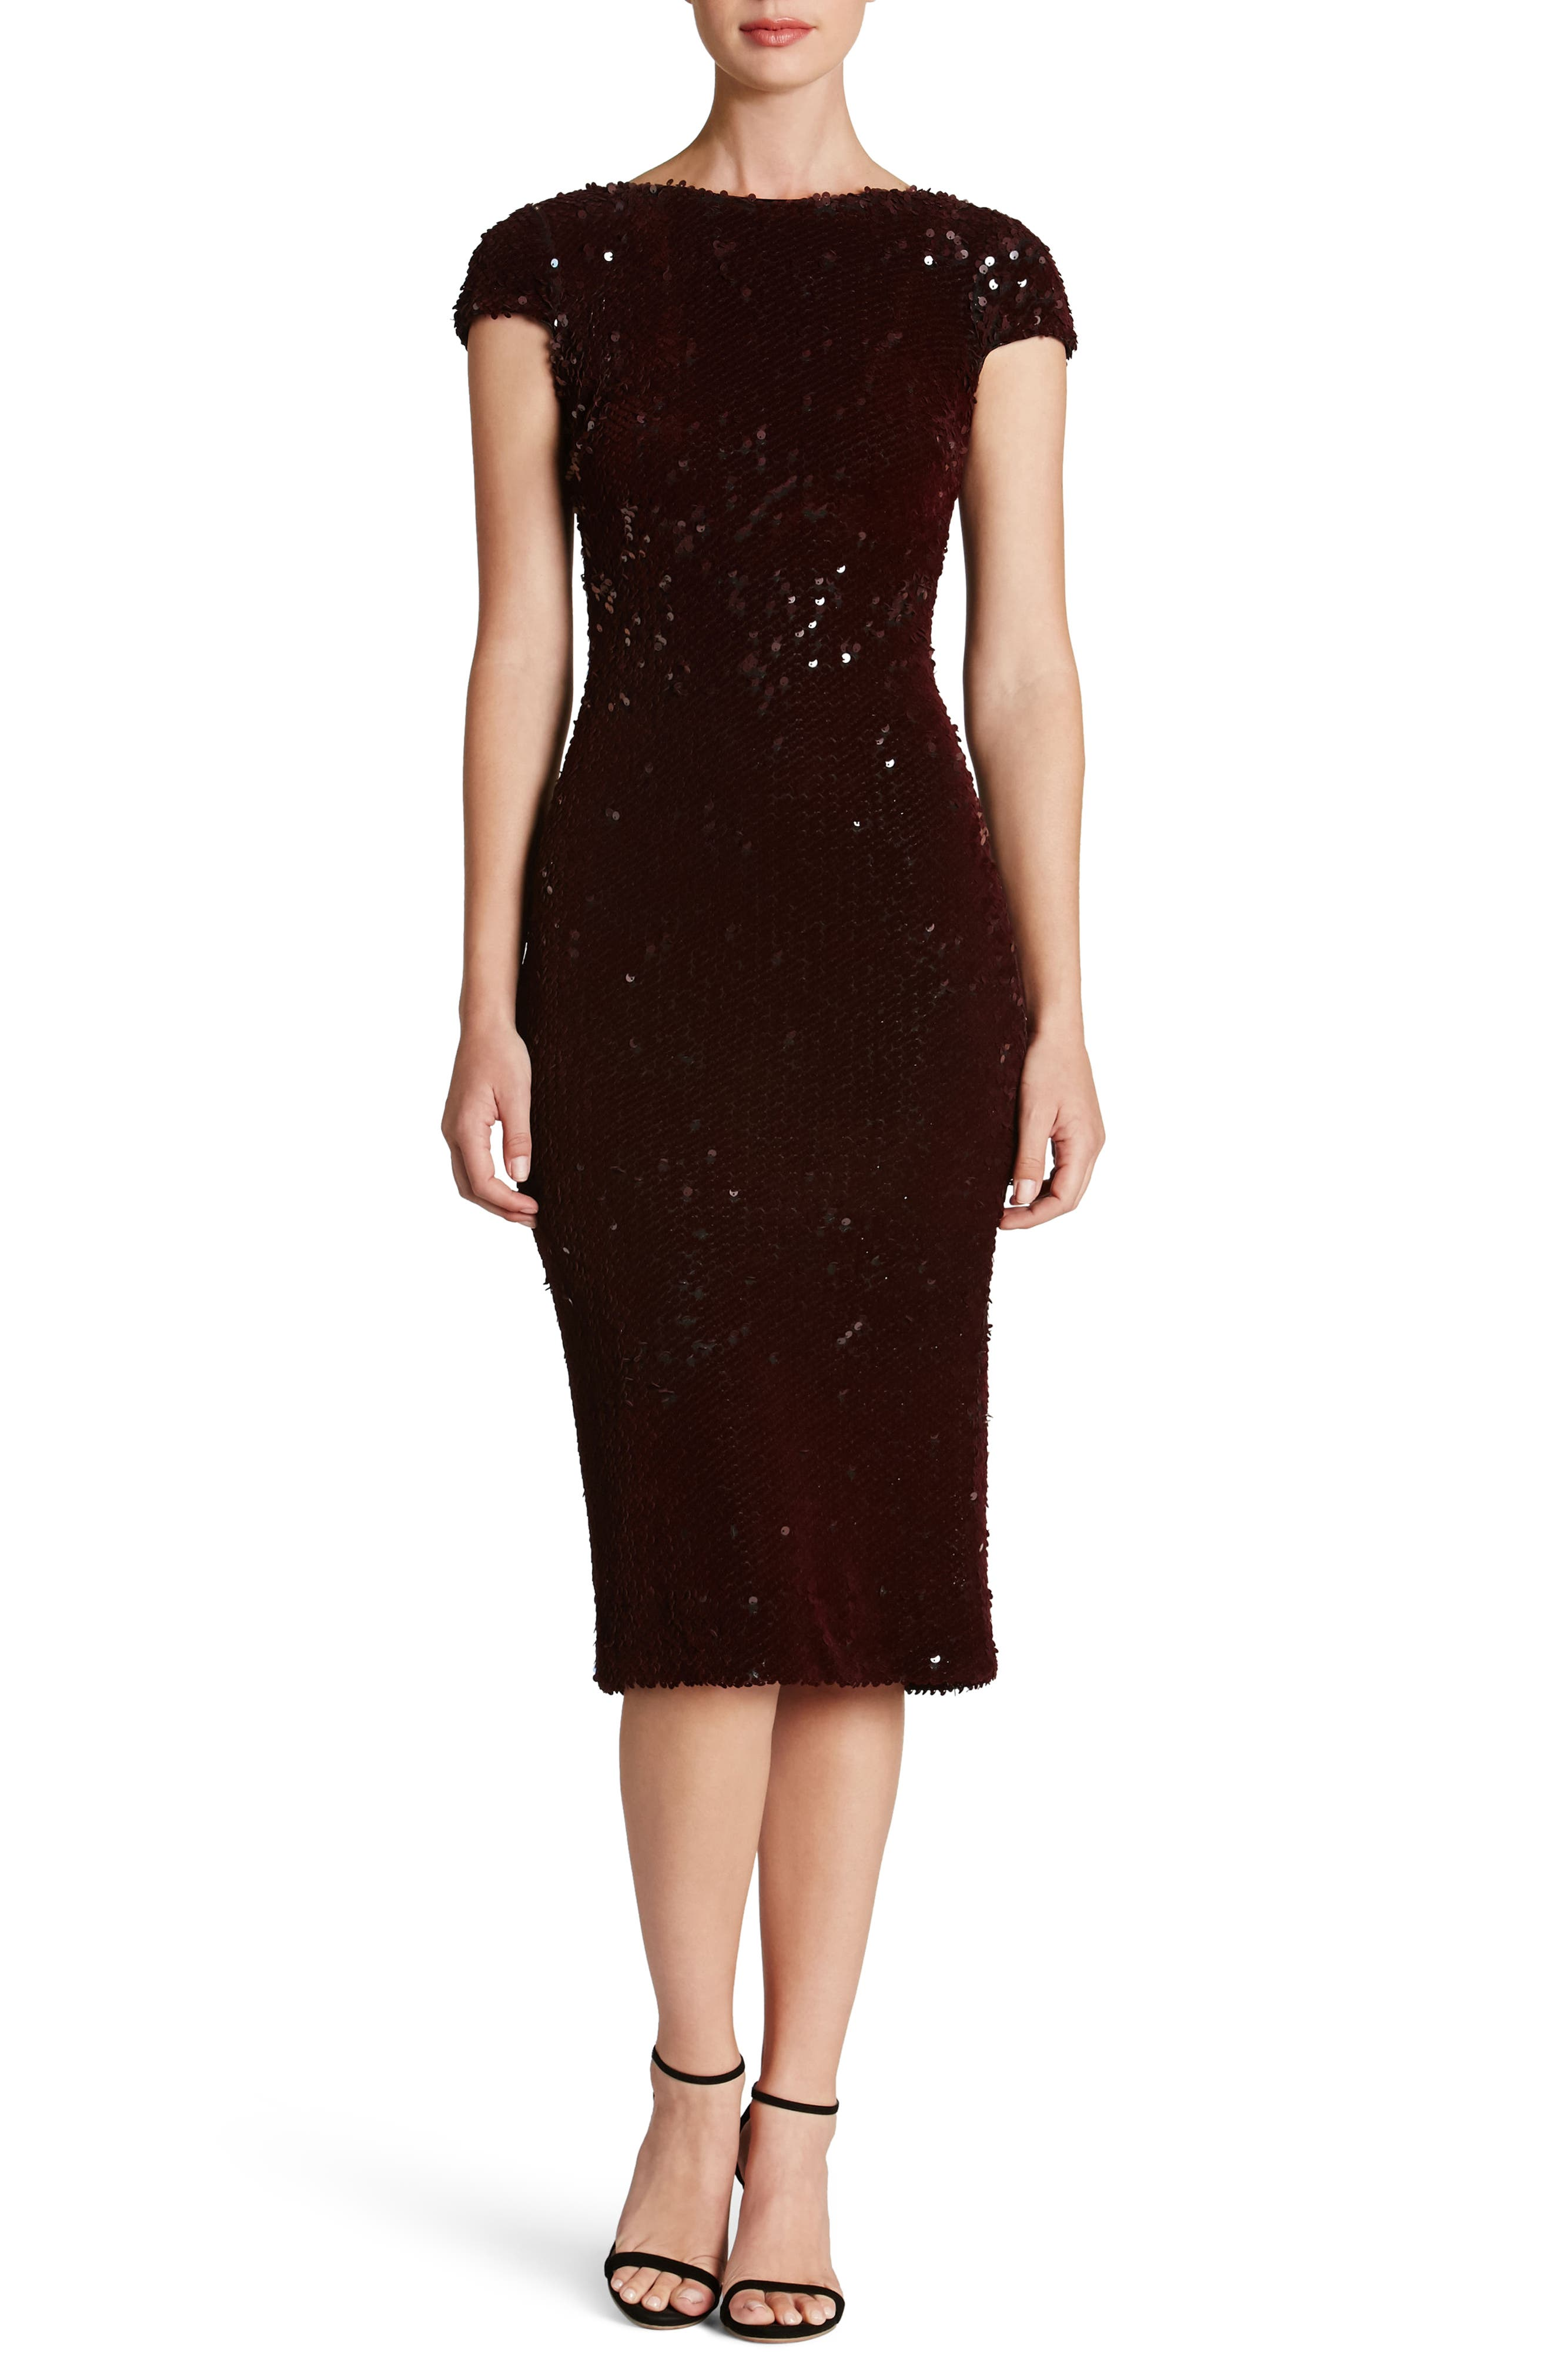 Alternate Image 1 Selected - Dress the Population Marcella Sequin Body-Con Dress